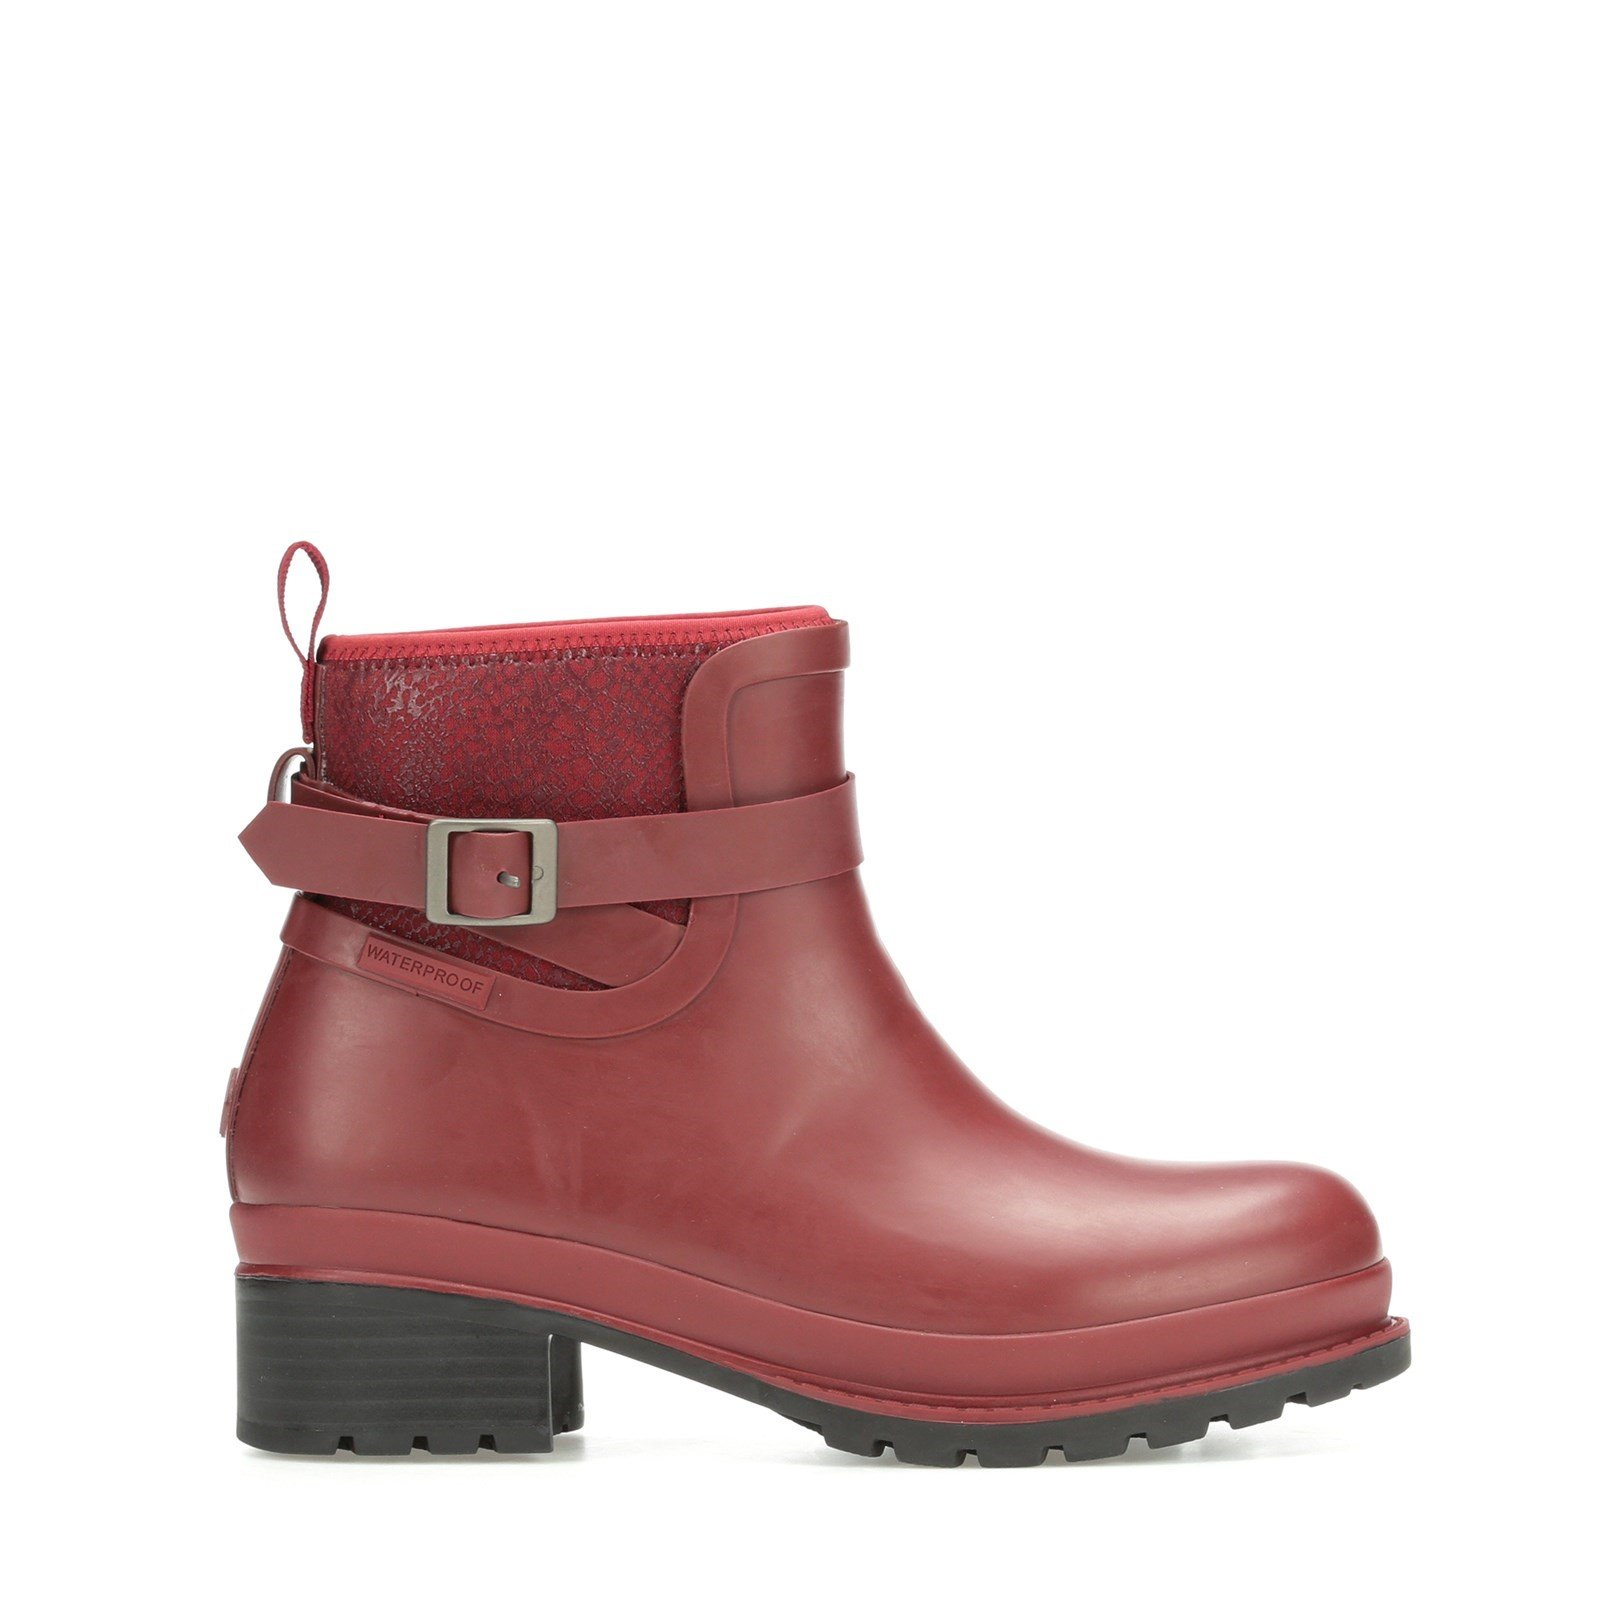 Muck Boots Women's Liberty Rubber Ankle Boots Various Colours 31816 - Cordovan 9